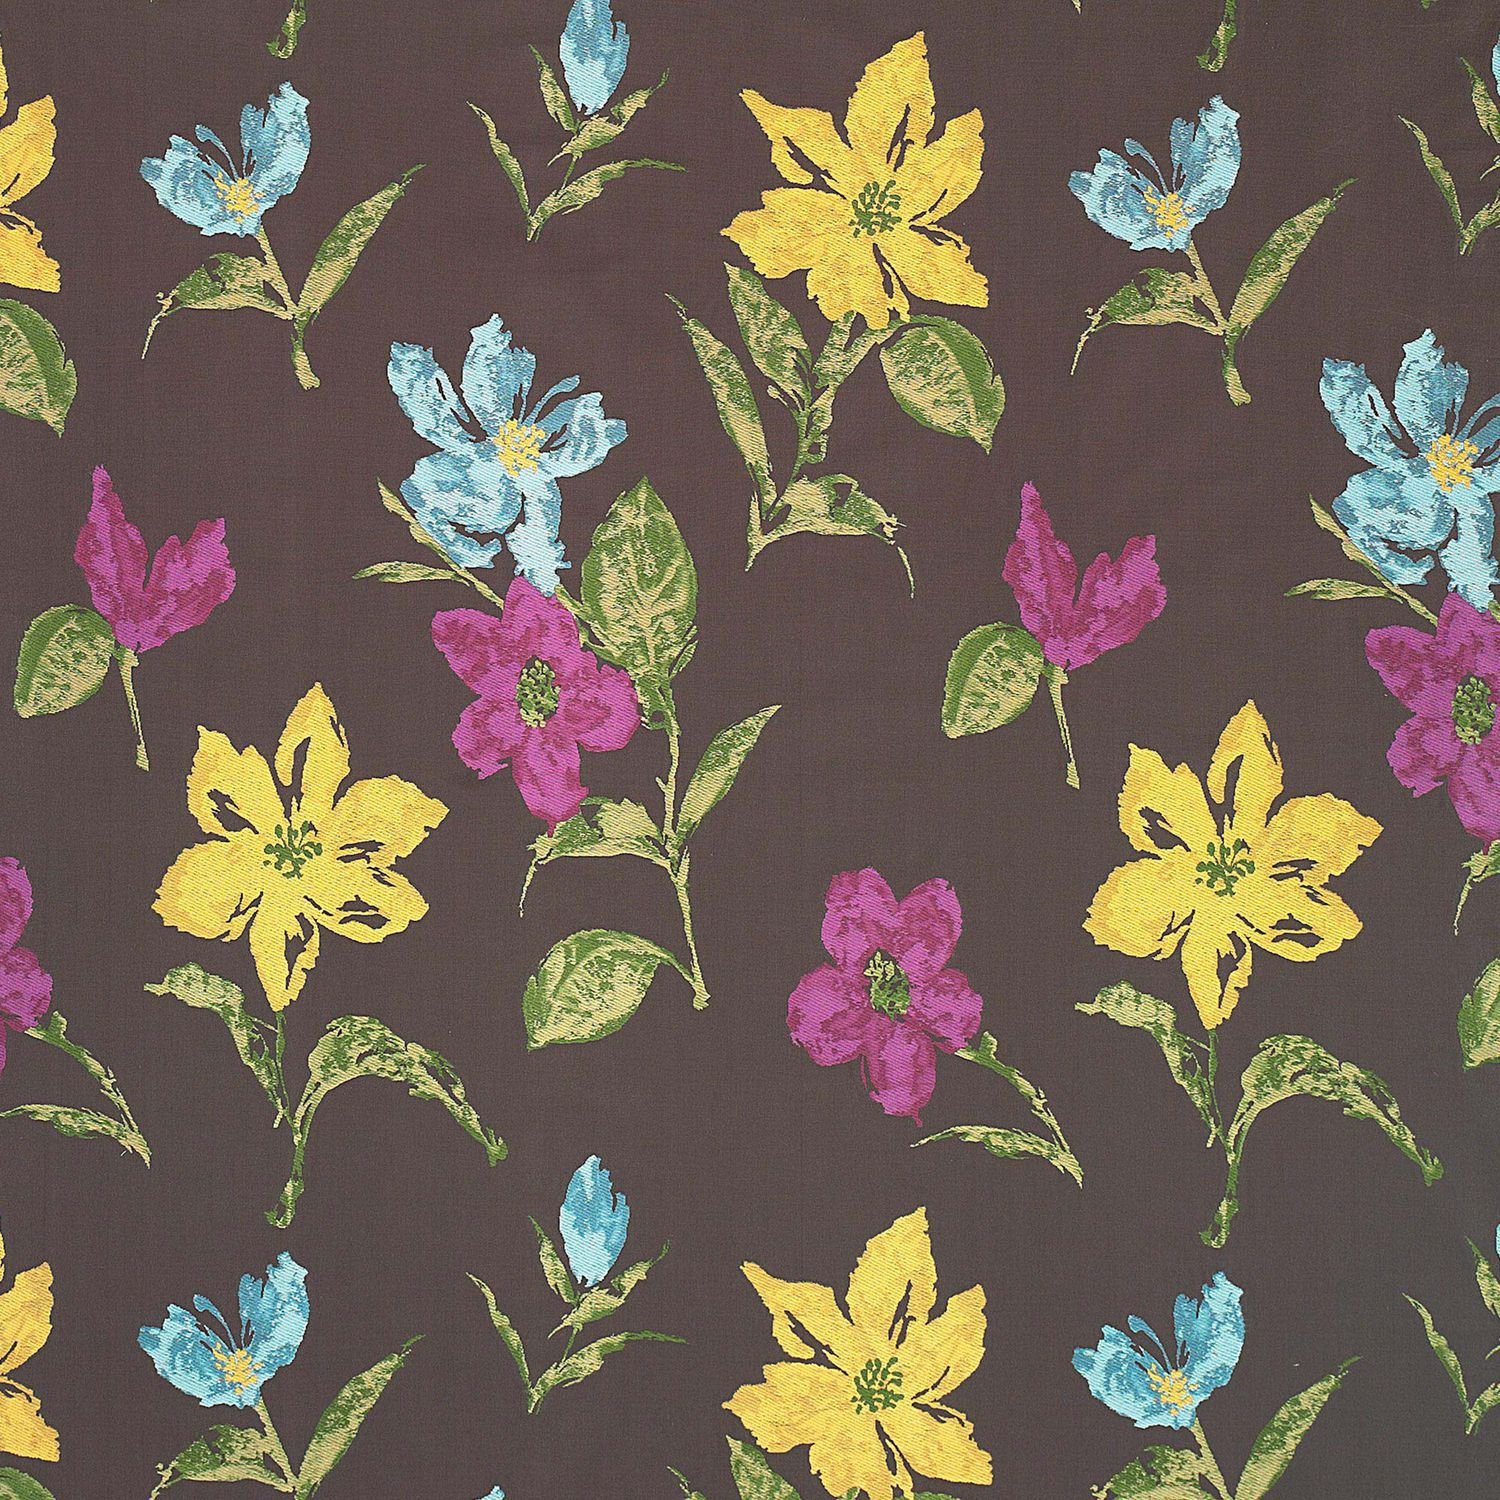 Upholstery Fabric For Curtains Floral Pattern Cotton Aruba  ~ Telas De Tapiceria Gaston Y Daniela